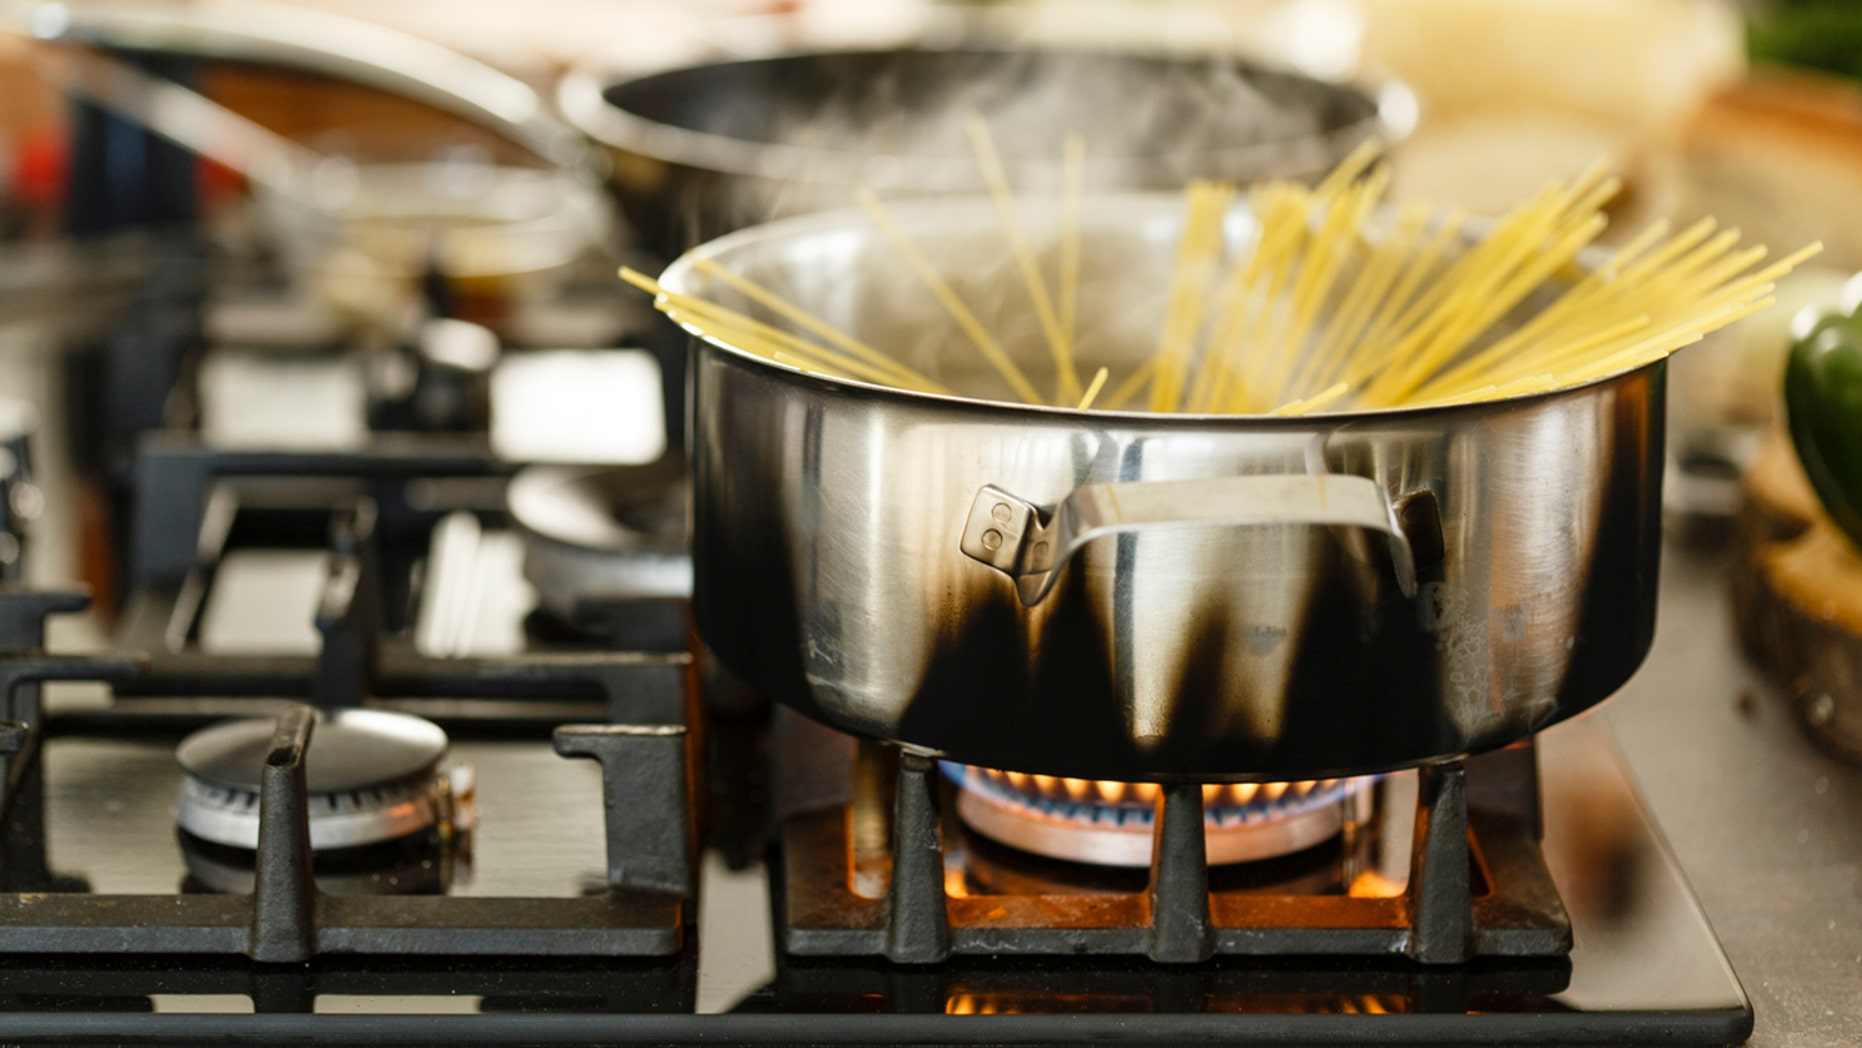 Three American students living abroad in Florence, Italy, started a fire in their apartment by cooking pasta without the most basic of ingredients.